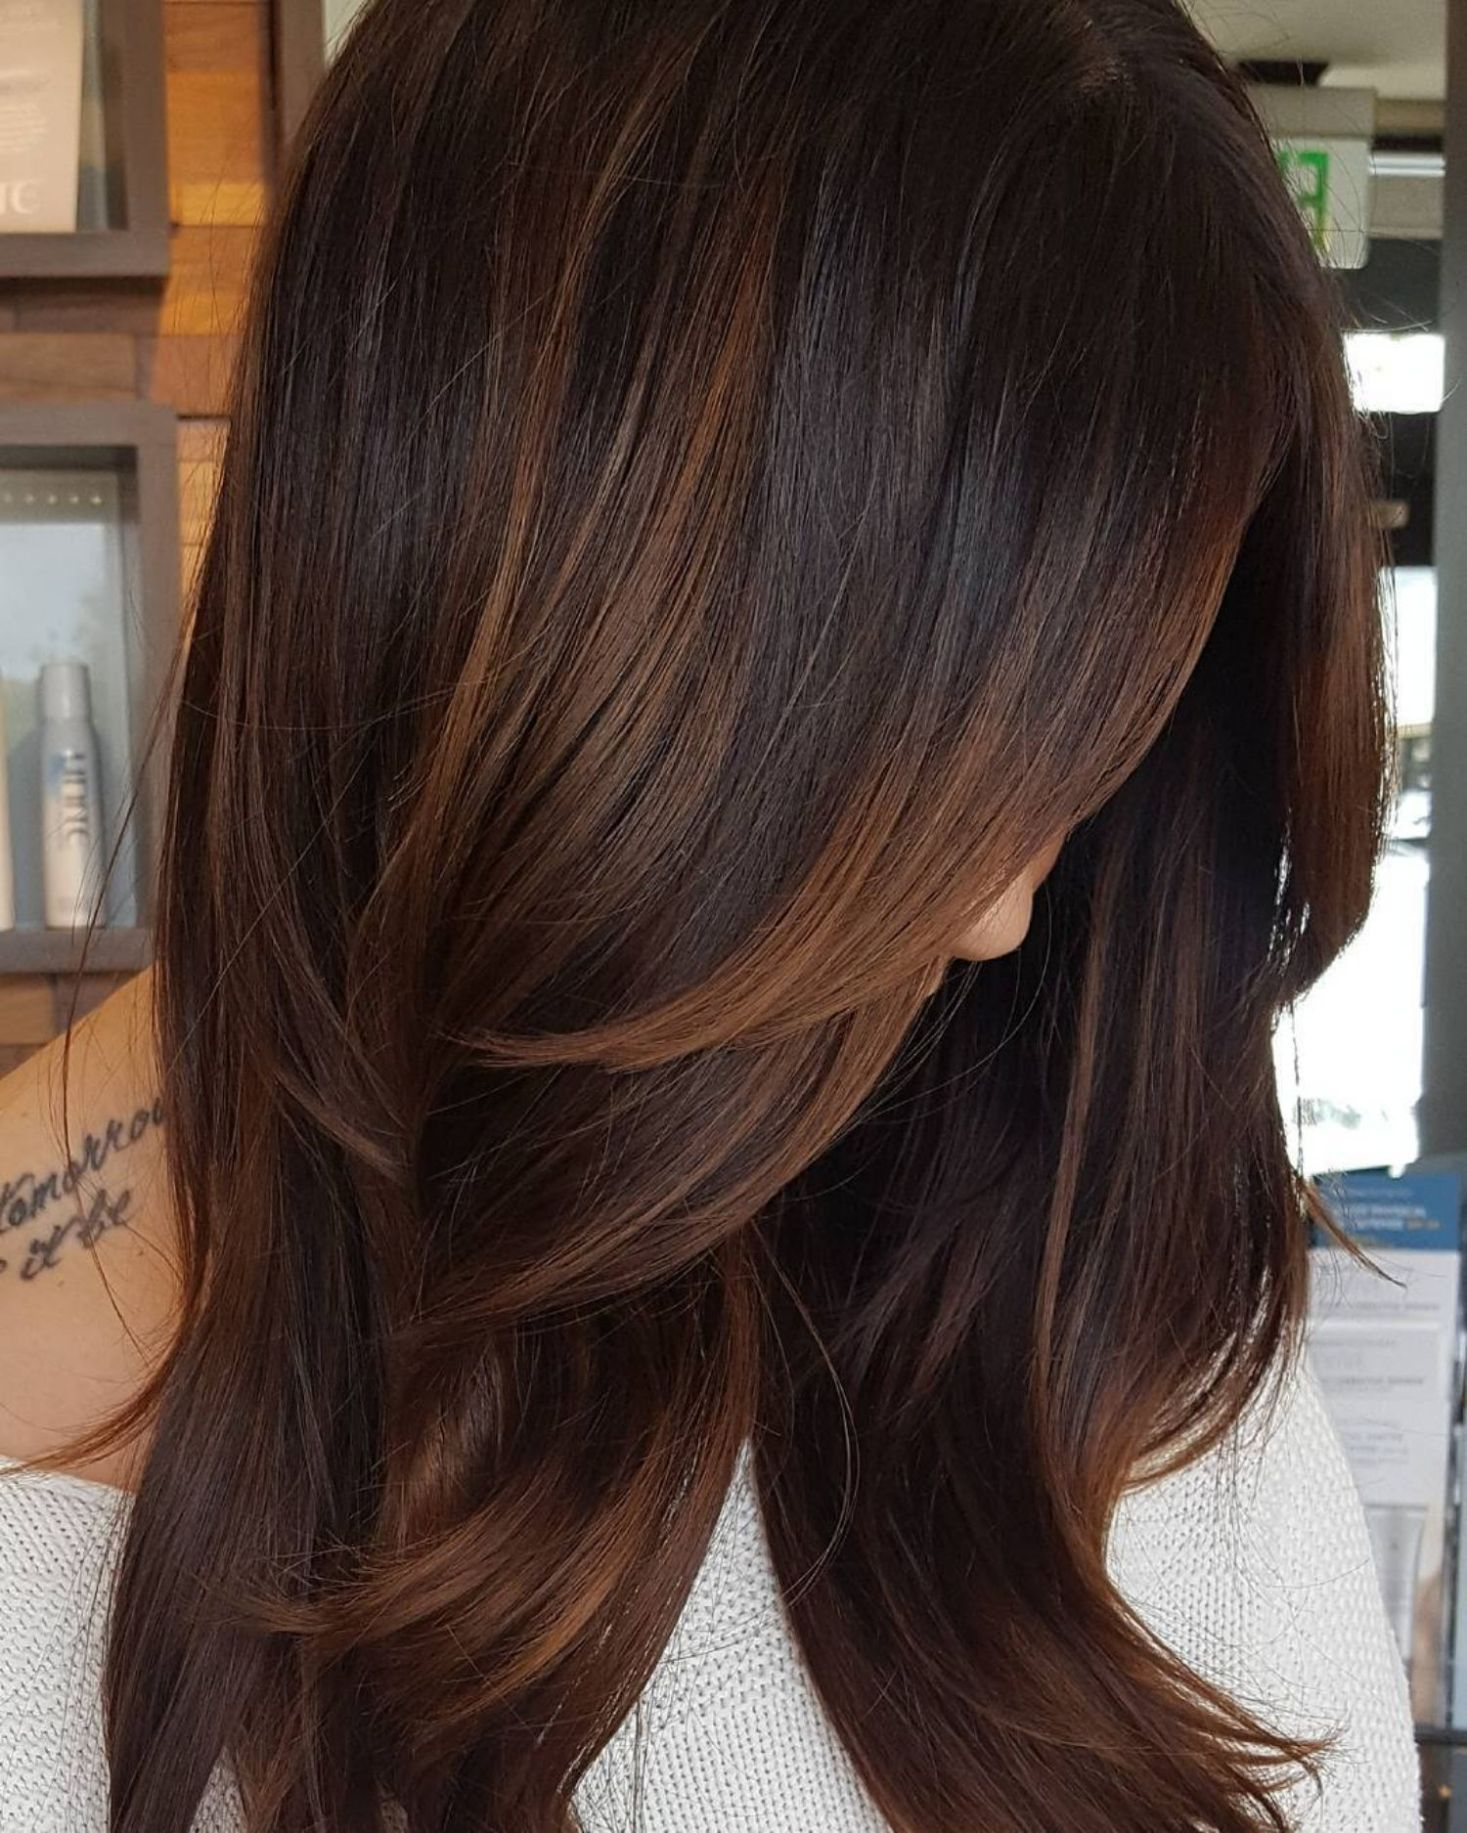 Copper Highlights For Dark Hair Hair Styles Dark Hair With Highlights Brown Hair With Highlights